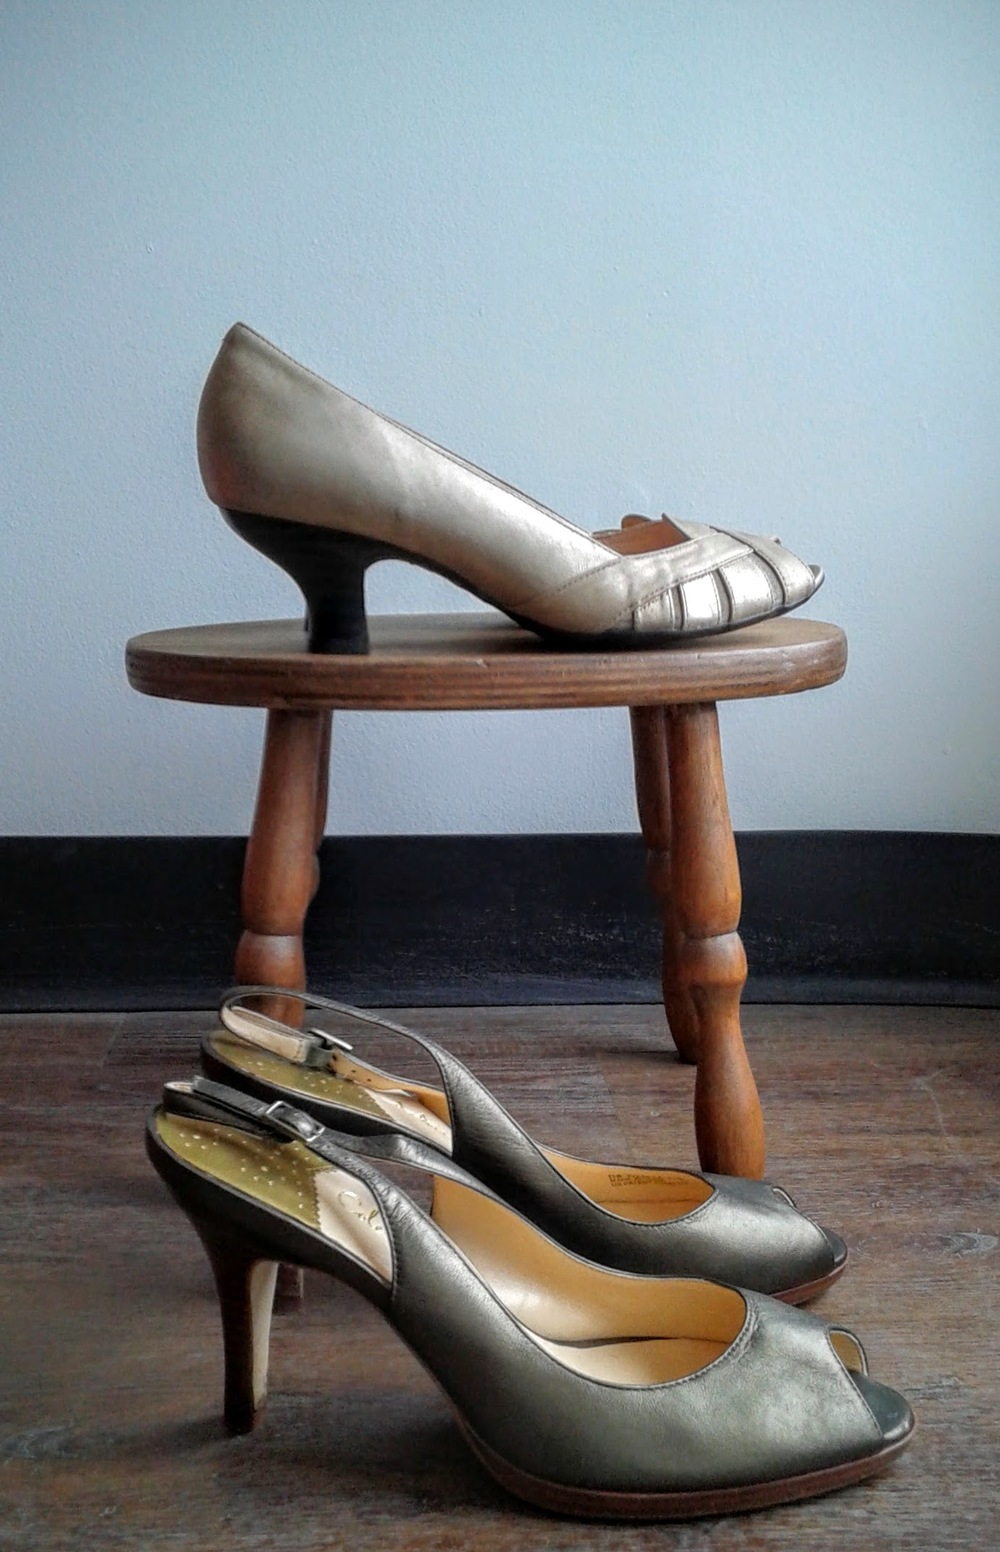 (Top) Clark shoes, S10, $40; (Bottom) Cole Haan shoes, S11, $52